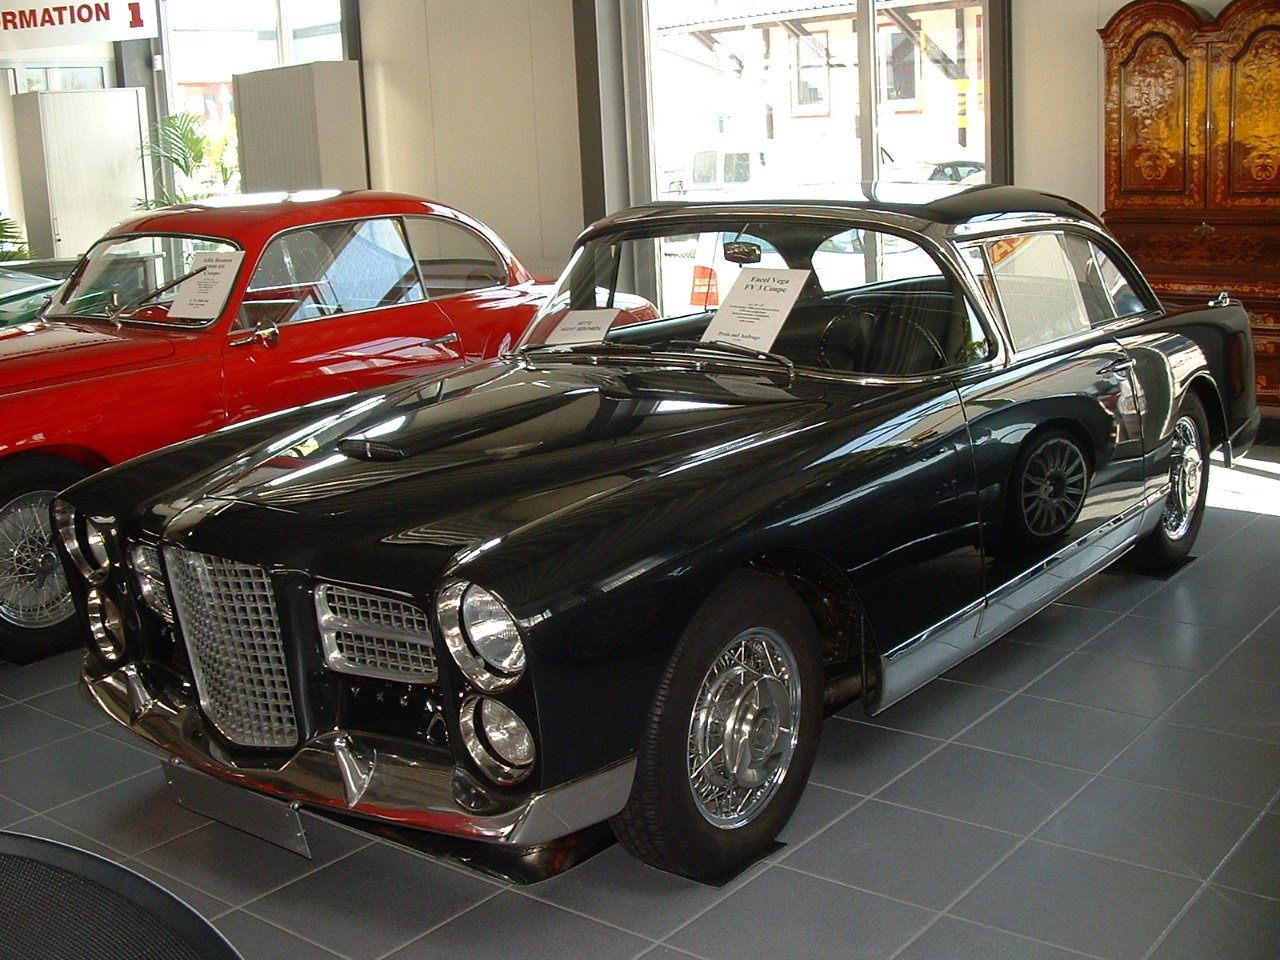 voiture facel vega occasion elva tipton blog. Black Bedroom Furniture Sets. Home Design Ideas